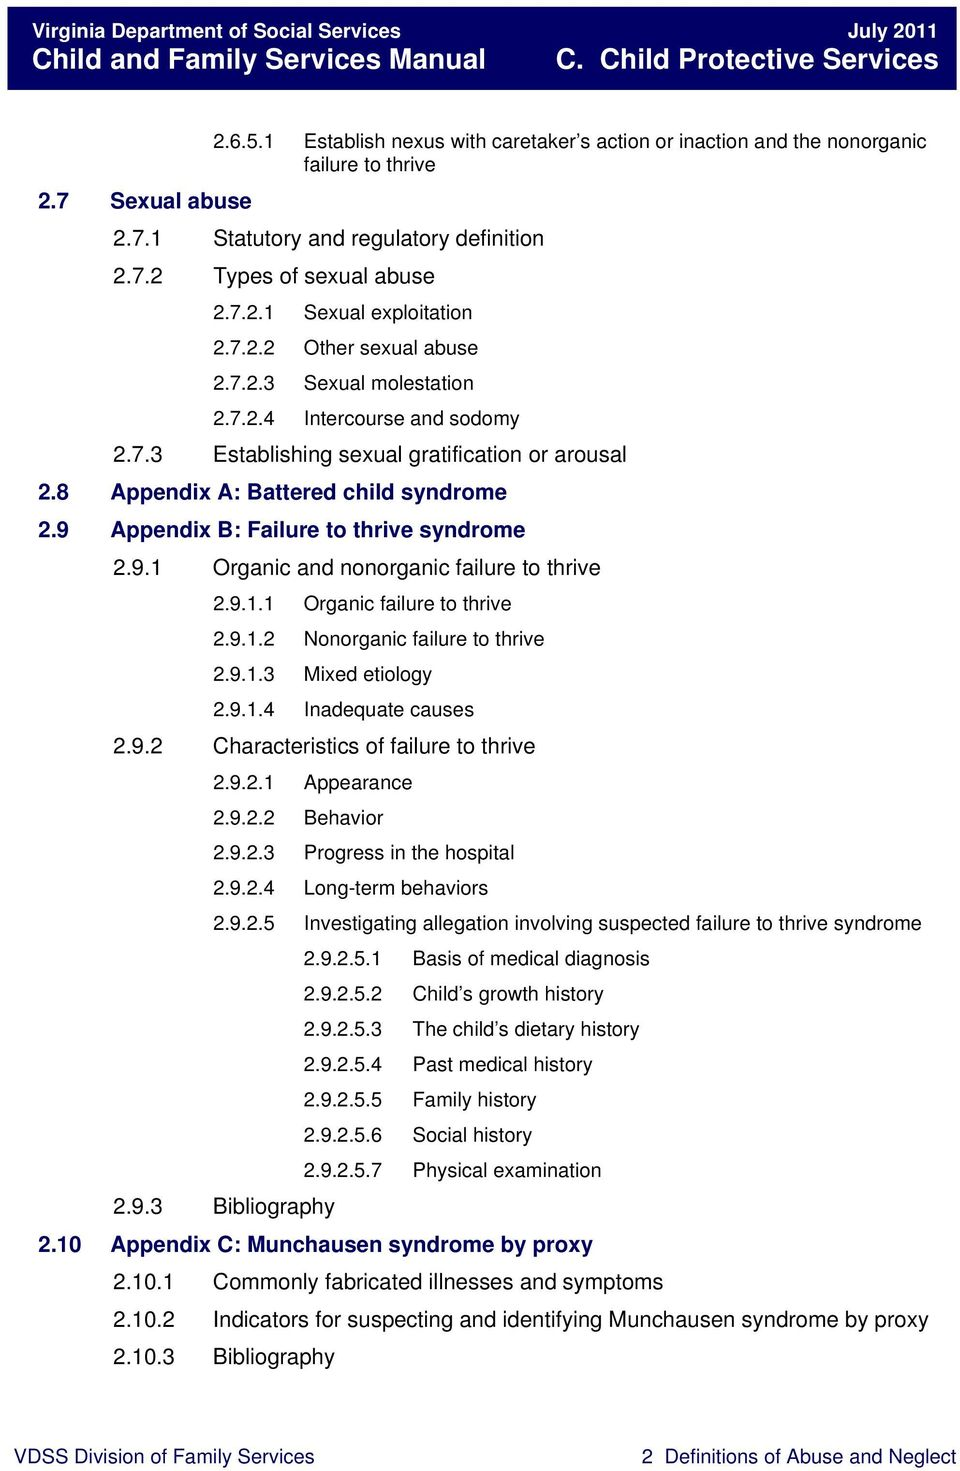 9 Appendix B: Failure to thrive syndrome 2.9.1 Organic and nonorganic failure to thrive 2.9.1.1 Organic failure to thrive 2.9.1.2 Nonorganic failure to thrive 2.9.1.3 Mixed etiology 2.9.1.4 Inadequate causes 2.